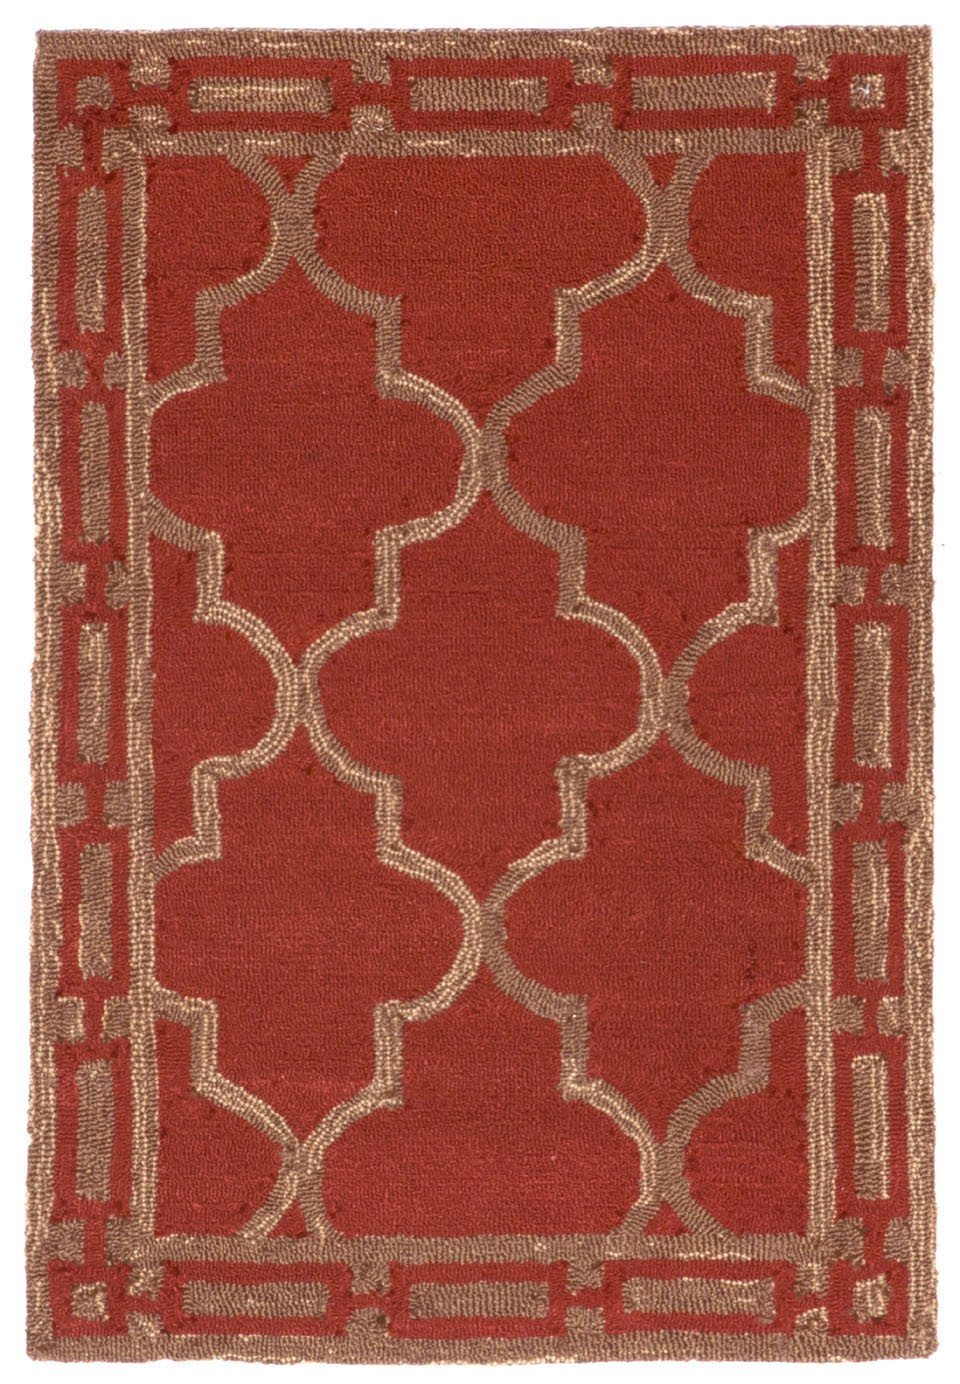 Trans-Ocean Imports RVL23197624 Ravella Collection Red Finish Everywear Rug from Trans-Ocean